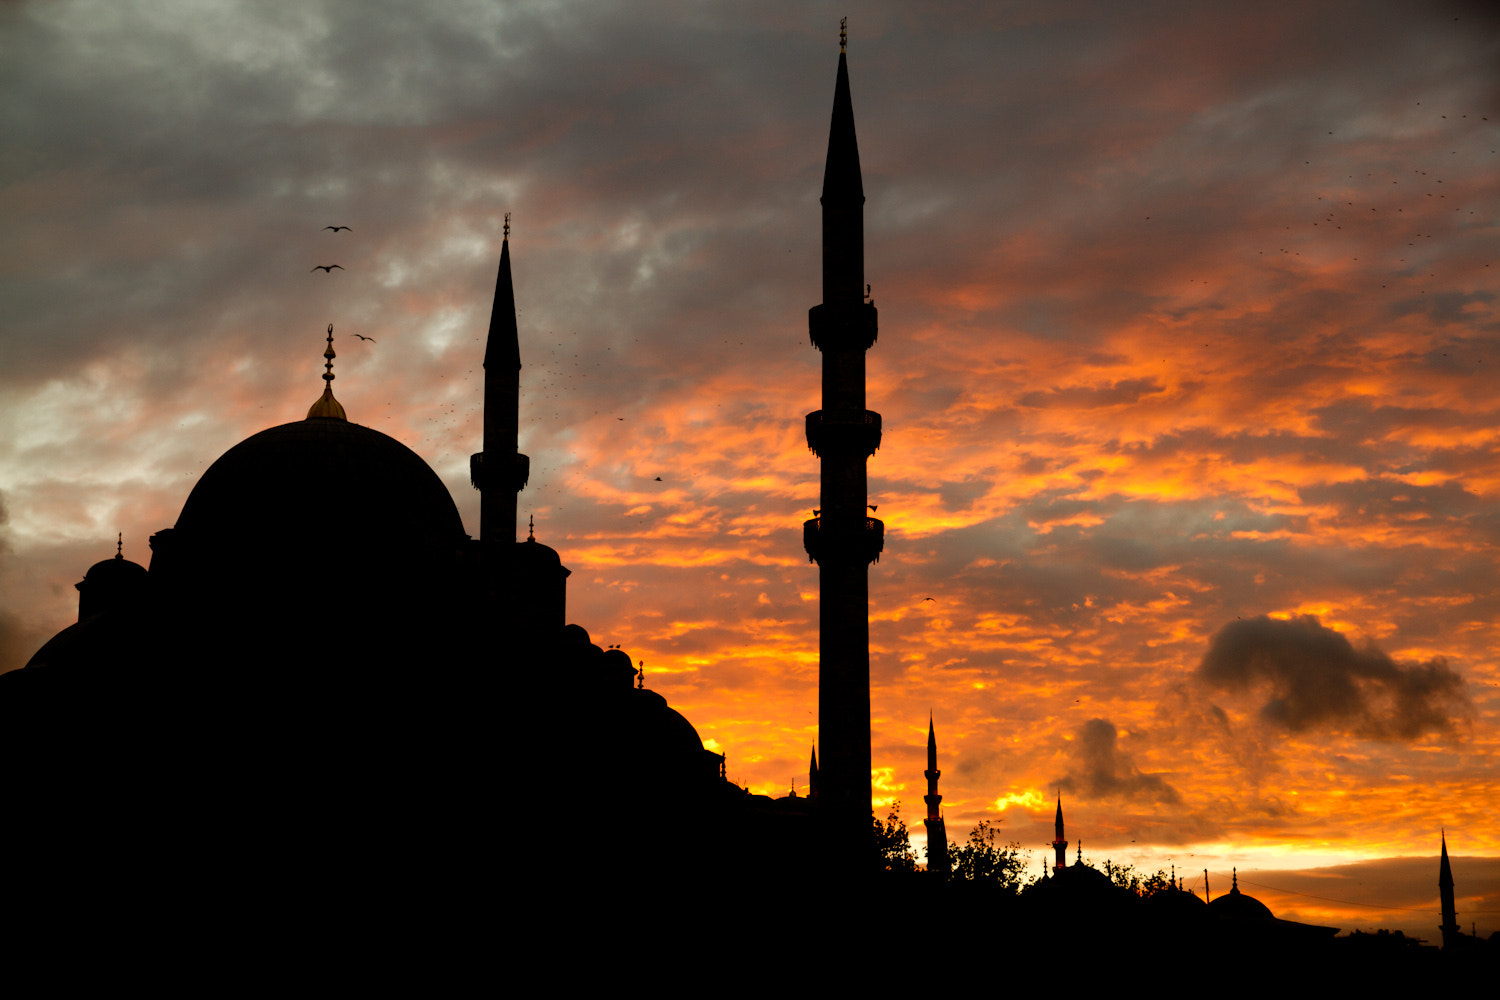 Photograph Istanbul by Tibographie - Thibaud Chosson  on 500px